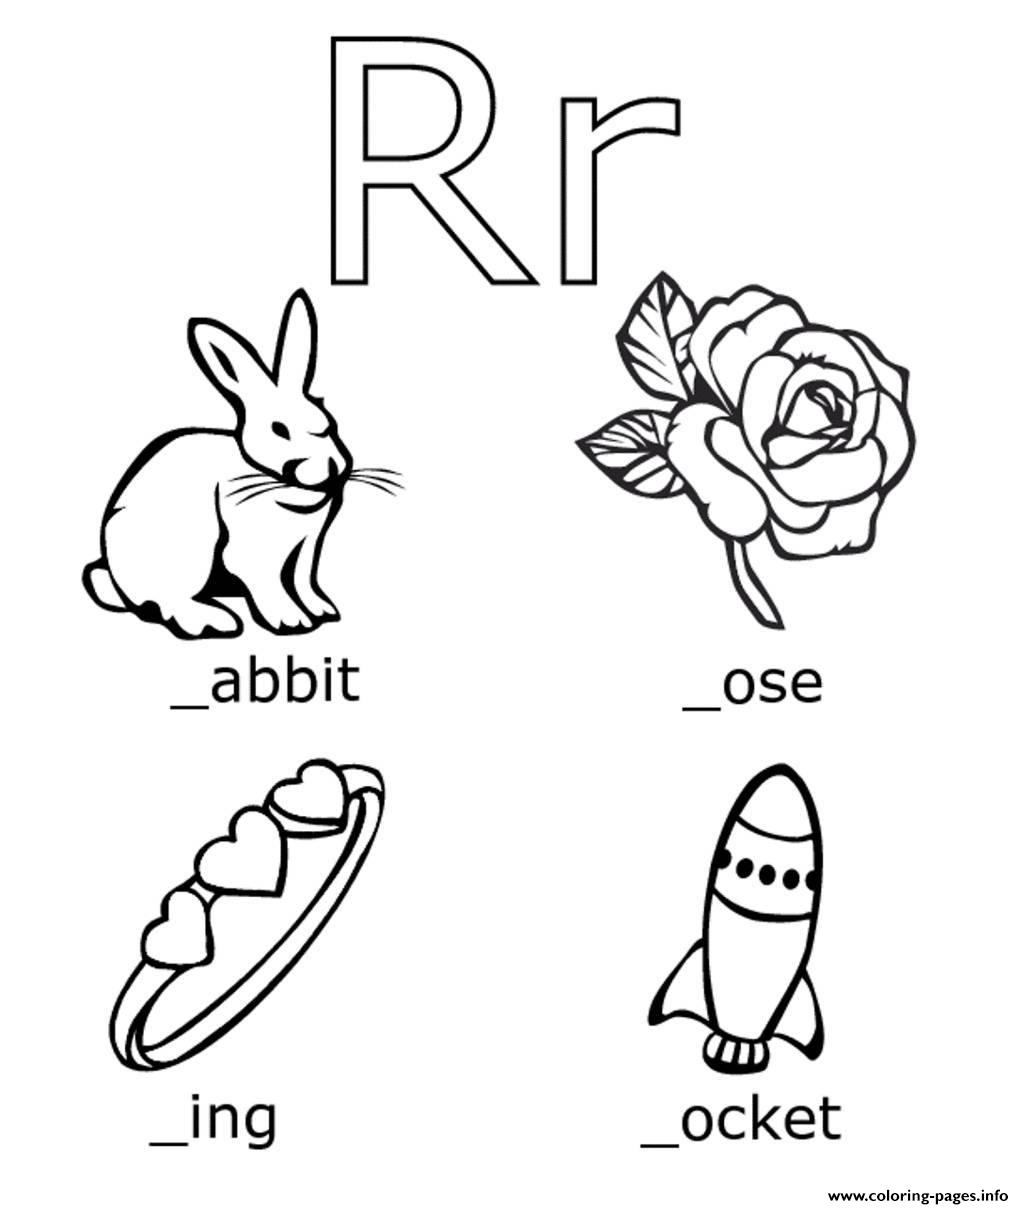 r coloring pictures coloring pages for kids alphabet letter r coloring pages r coloring pictures